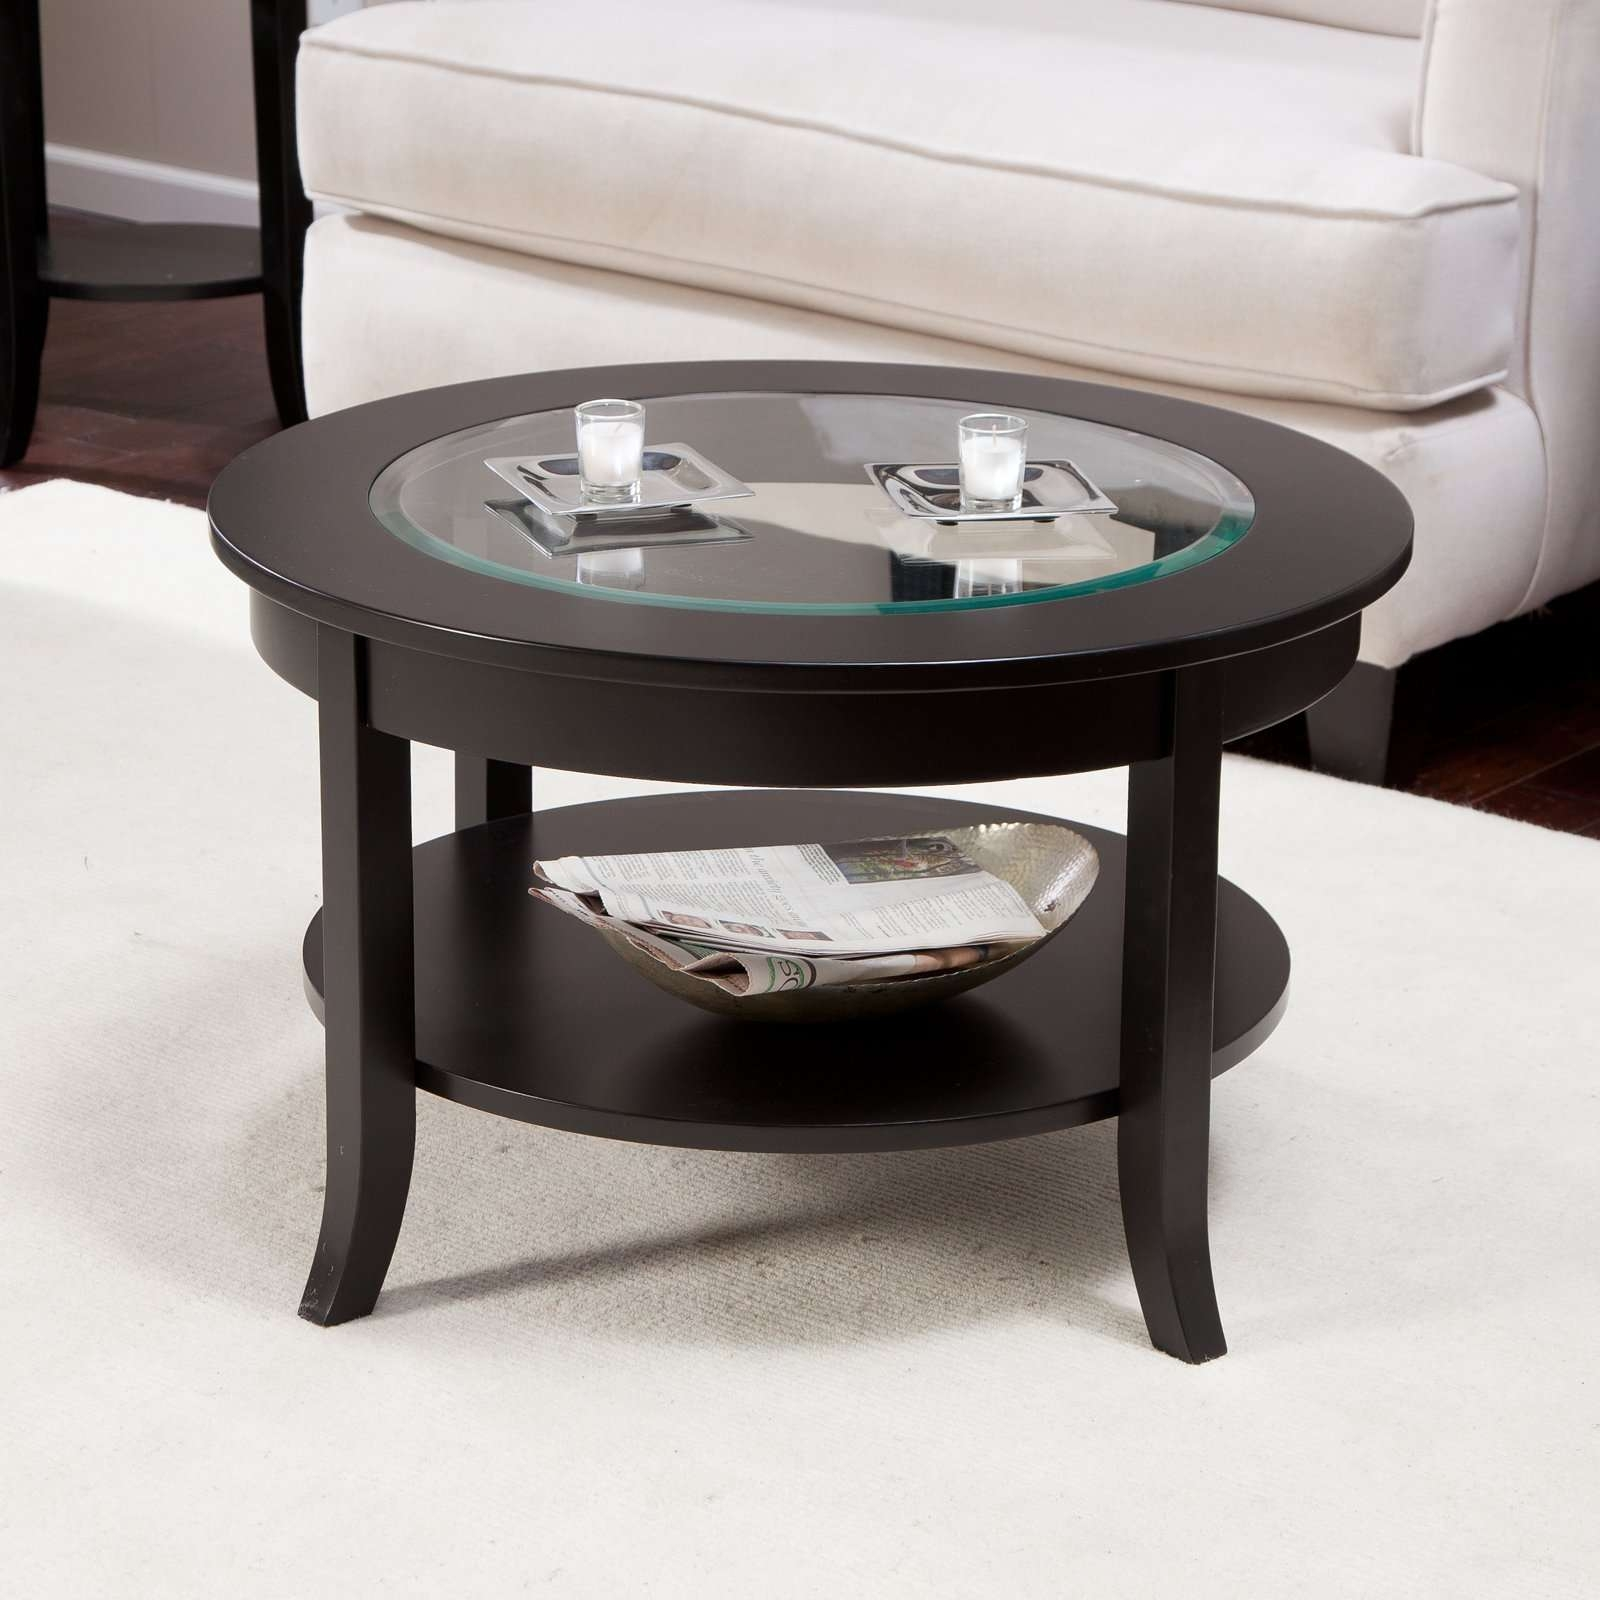 Fashionable Oval Black Glass Coffee Tables Throughout Coffee Table : Marvelous Ottoman Coffee Table Small Coffee Tables (View 9 of 20)